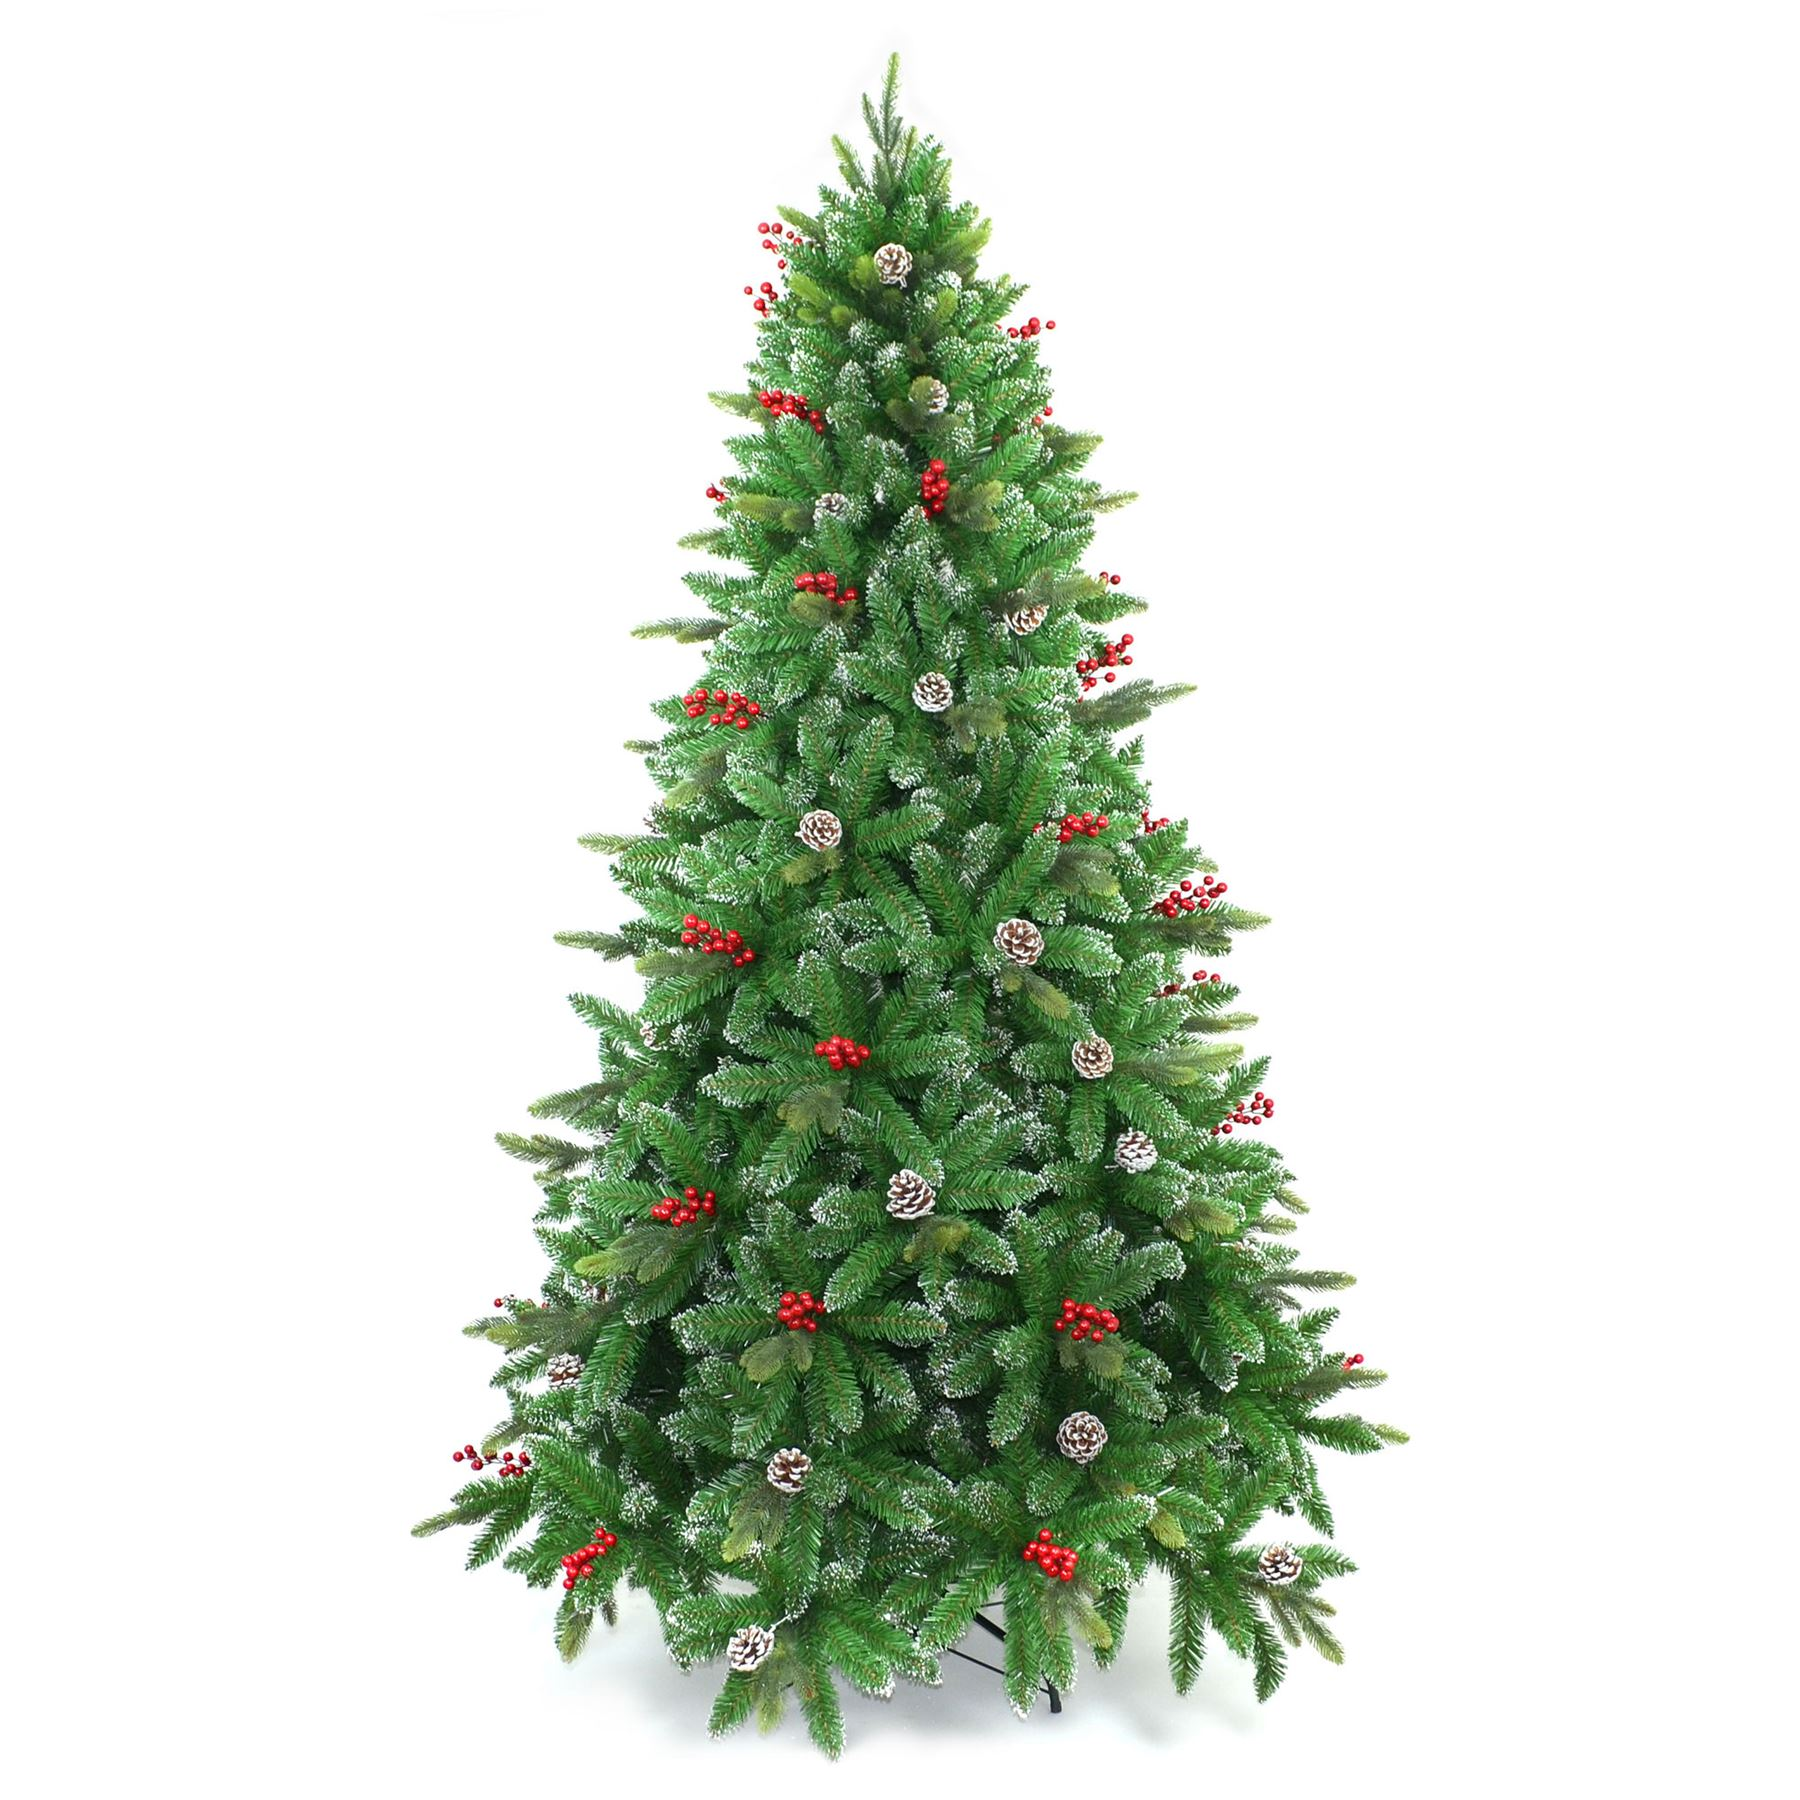 Christmas tree pre lit decorated garland wreath xmas home Garland tree decoration